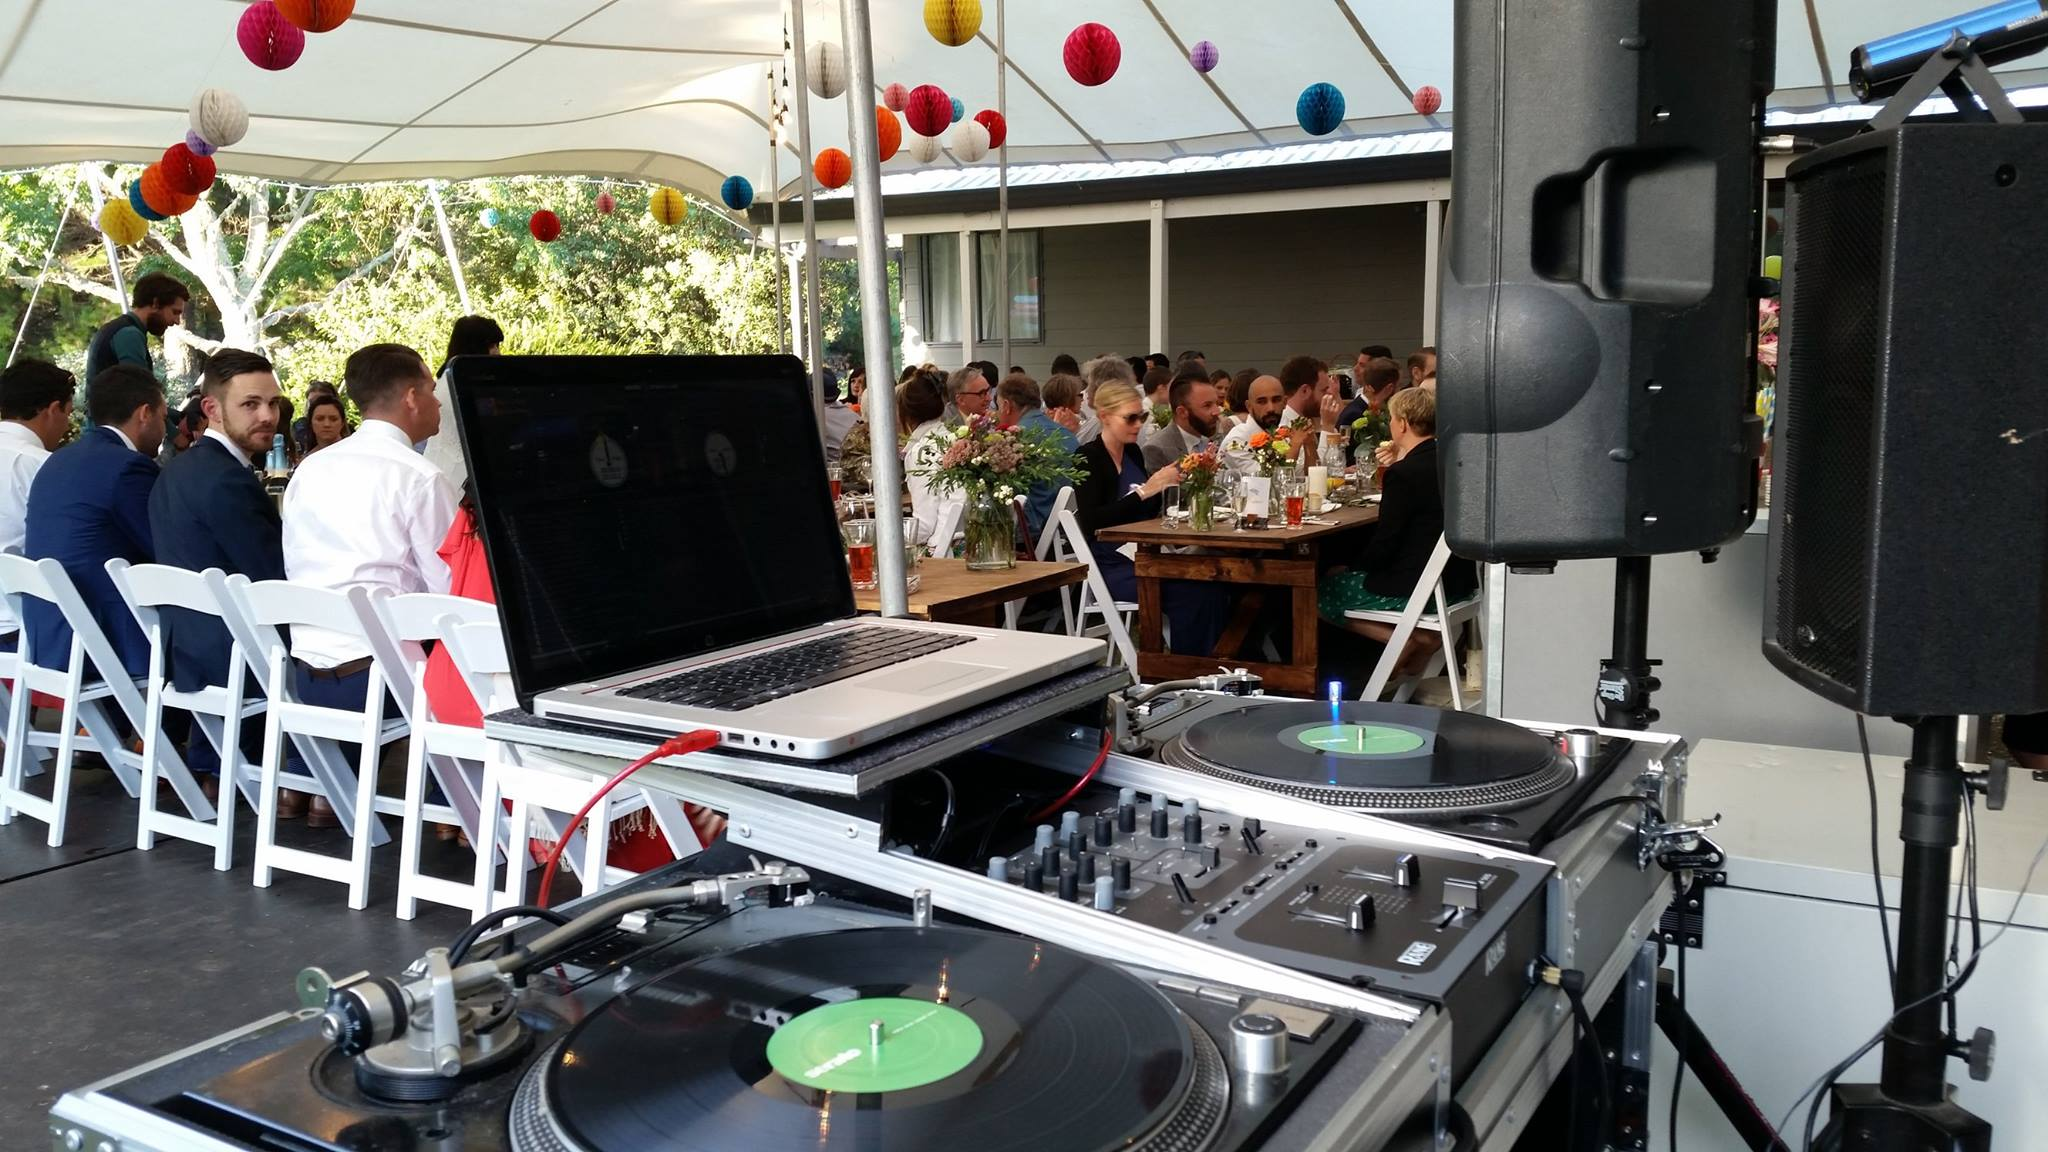 MIXMASTER USES ONLY THE BEST DJ GEAR - FROM TURNTABLES TO MIDI CONTROLLERS, CDJs AND only the best SOUND EQUIPMENT